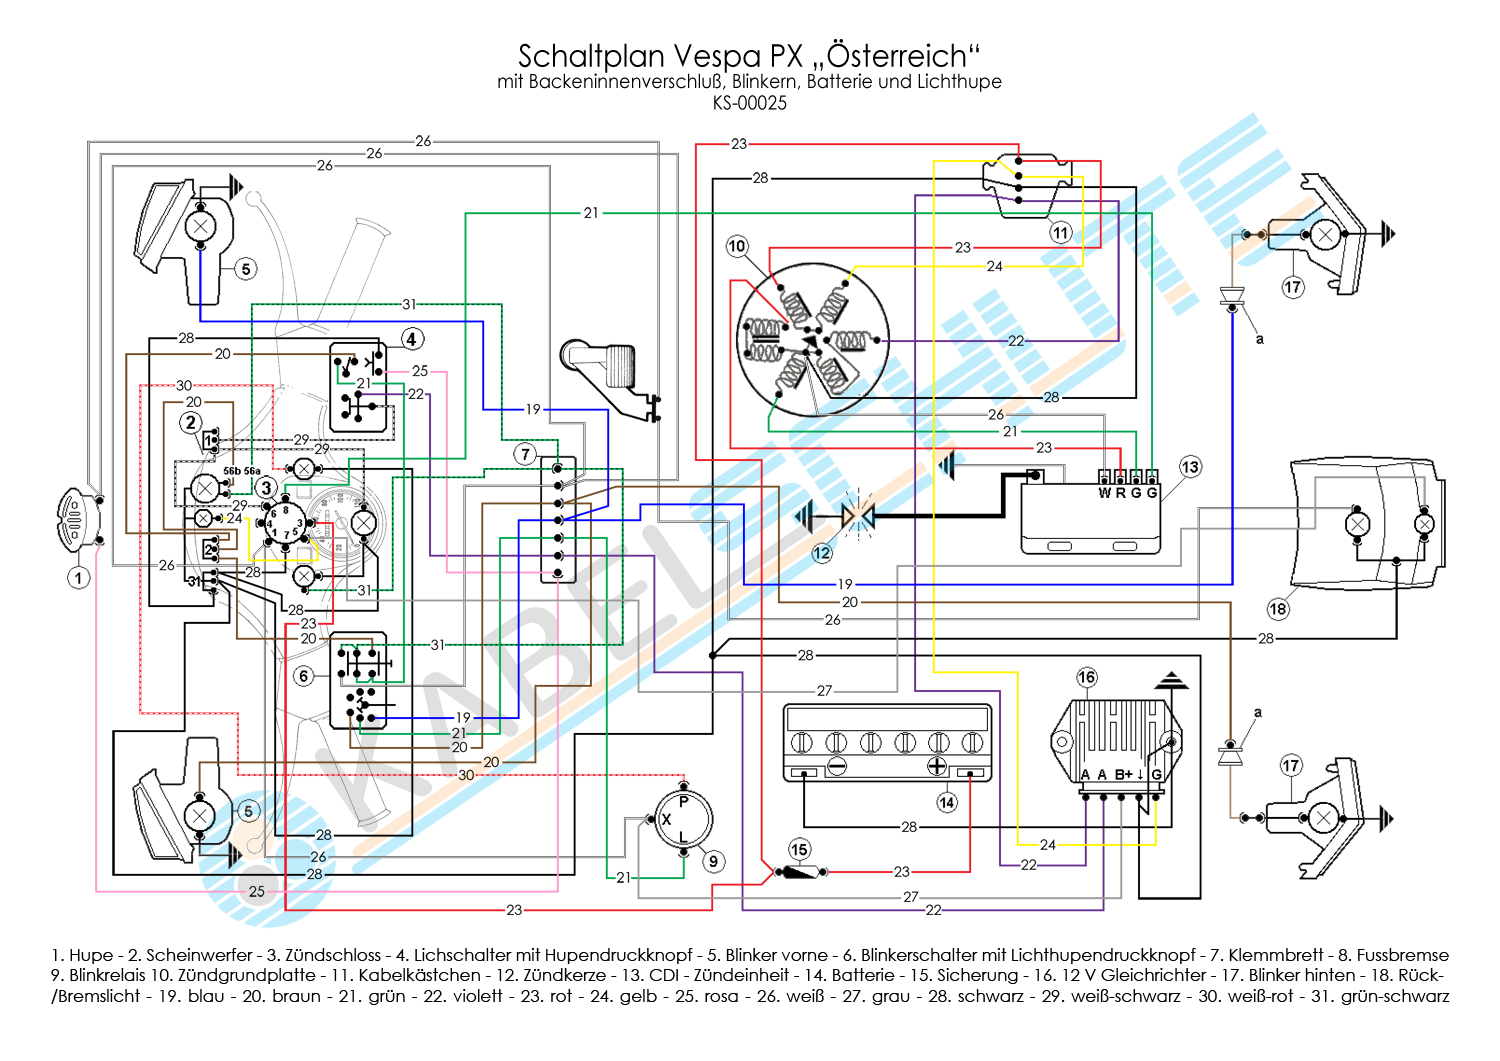 Marvelous Vespa Gt200 Wiring Diagram Wiring Diagrams Lol Wiring Digital Resources Cettecompassionincorg